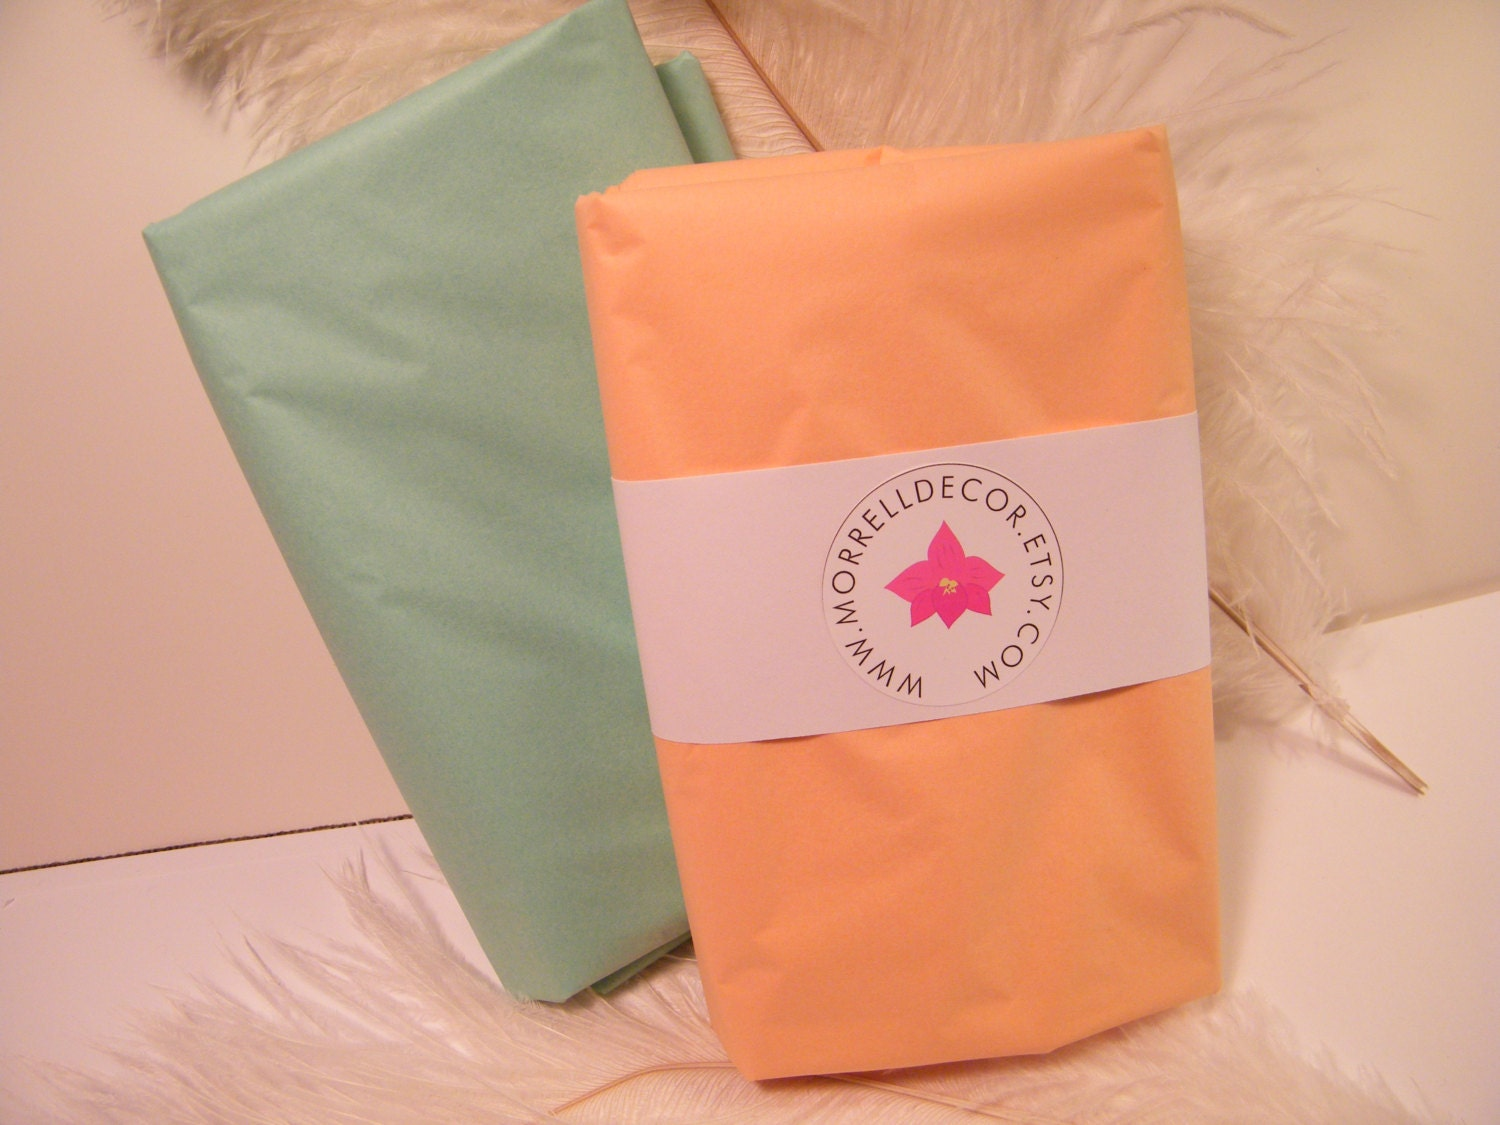 peach tissue paper Products 1 - 12 of 29 black 1 blue 2 brown 1 burgundy 1 cerise 1 gold 1 green 5 grey 1 ivory 1 lavender 1 oliven 1 orange 1 peach 1 pink 3 plum 1 red 1 saffron 1 silver 1 turquoise 1 violet 1 white 1 yellow 1 filter by size large 29 medium 29 small 29 sign up for our newsletter (press enter after.